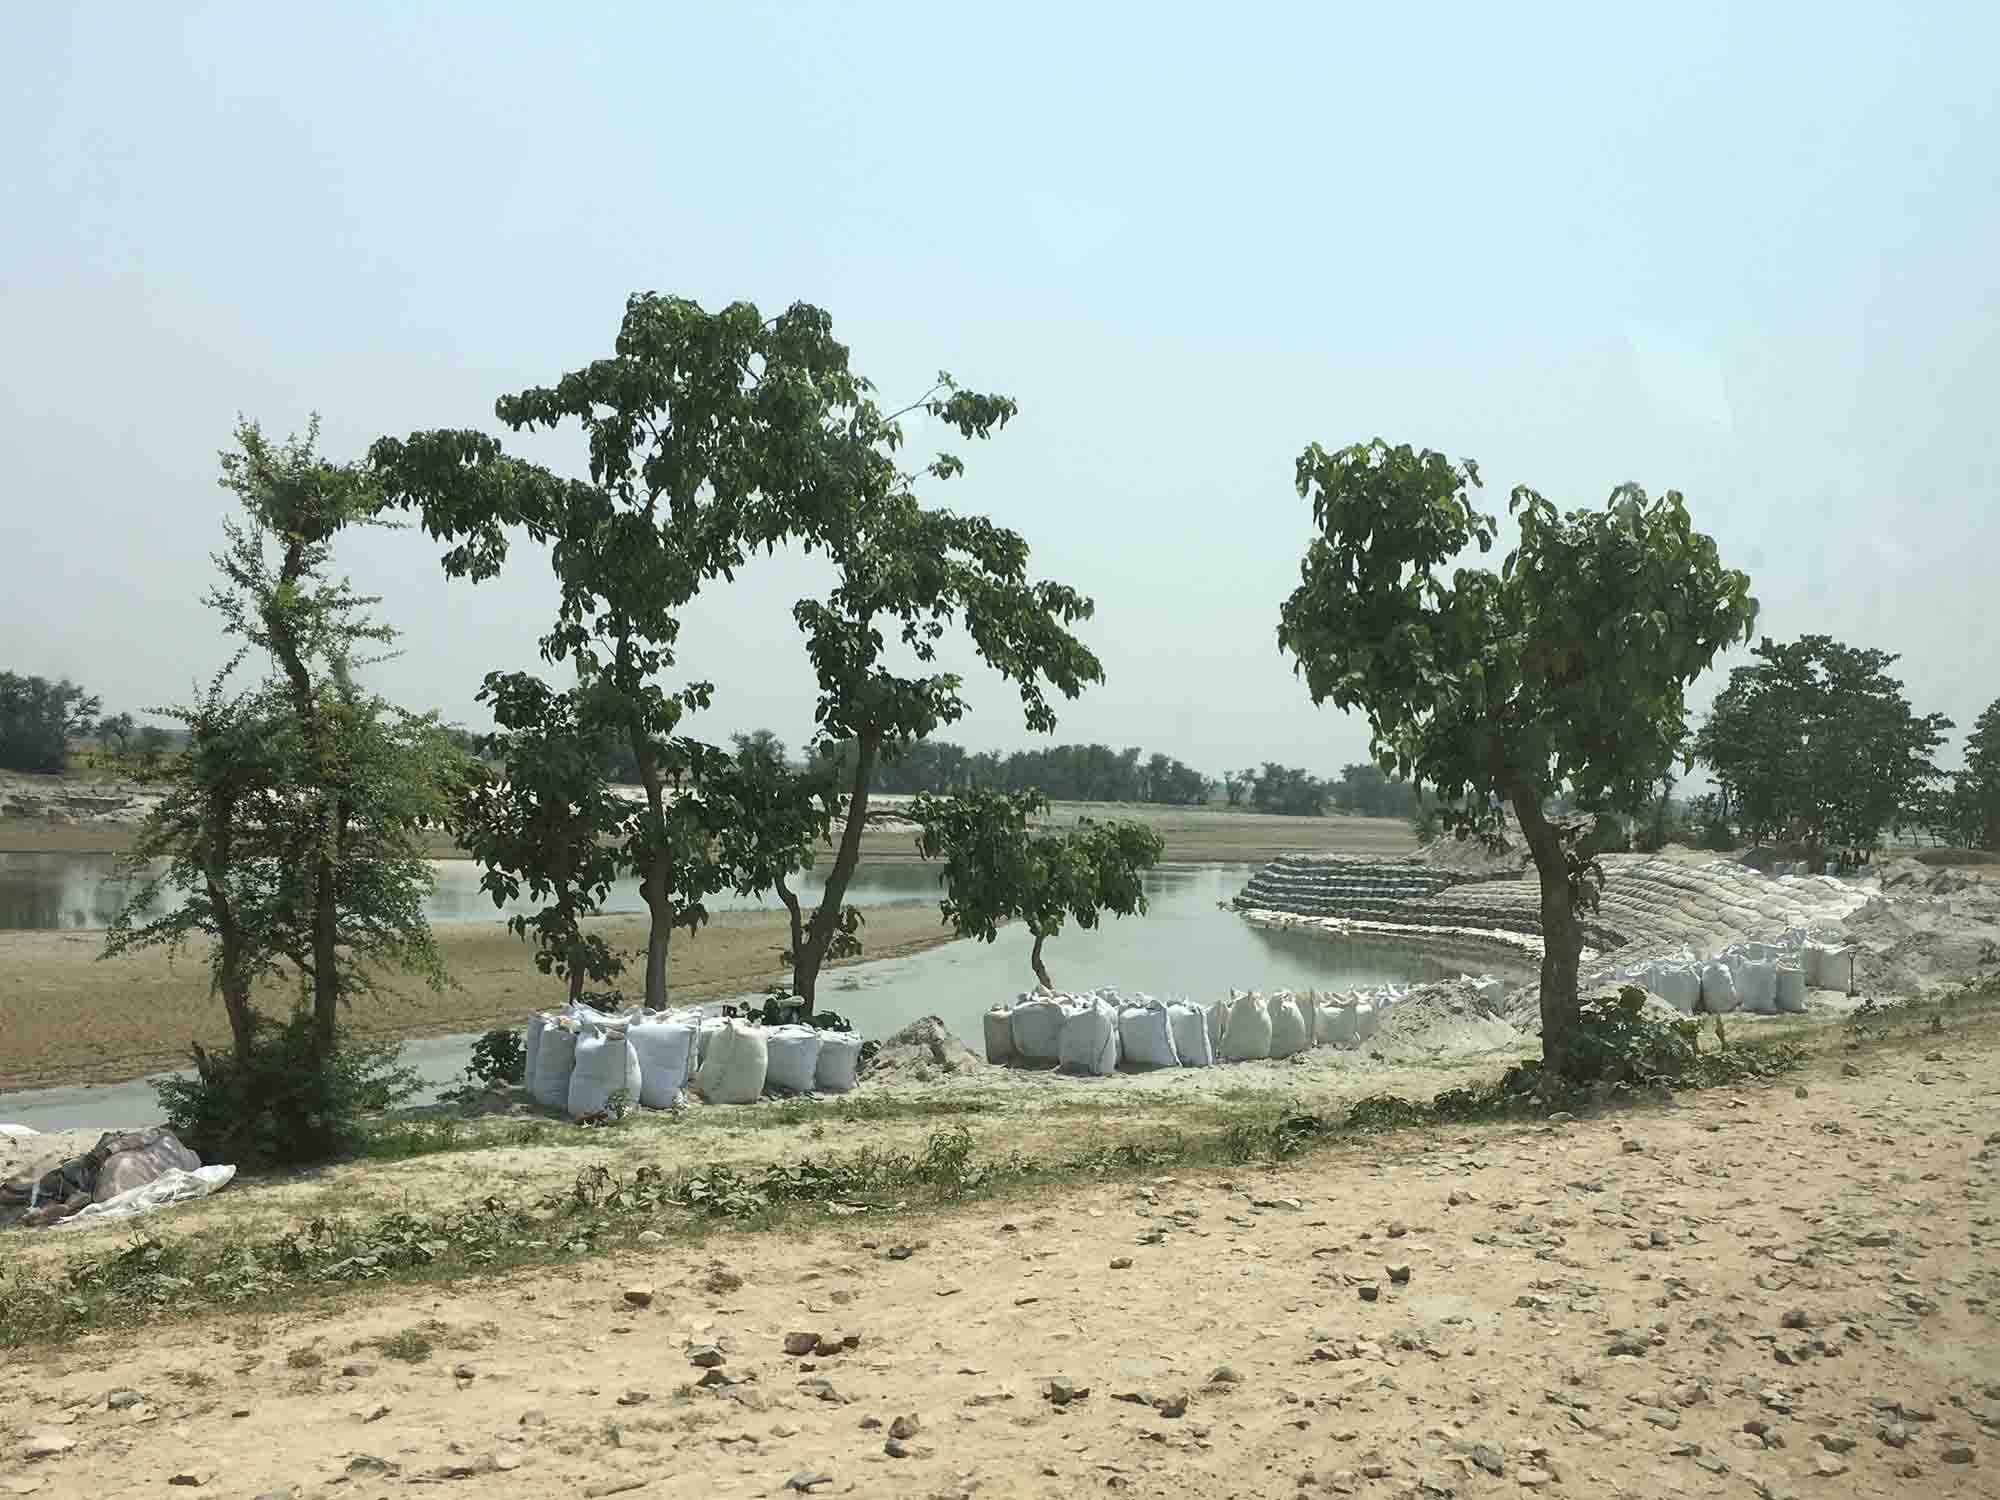 Sandbags line the banks of the Kosi river and its tributaries in anticipation of monsoon season.